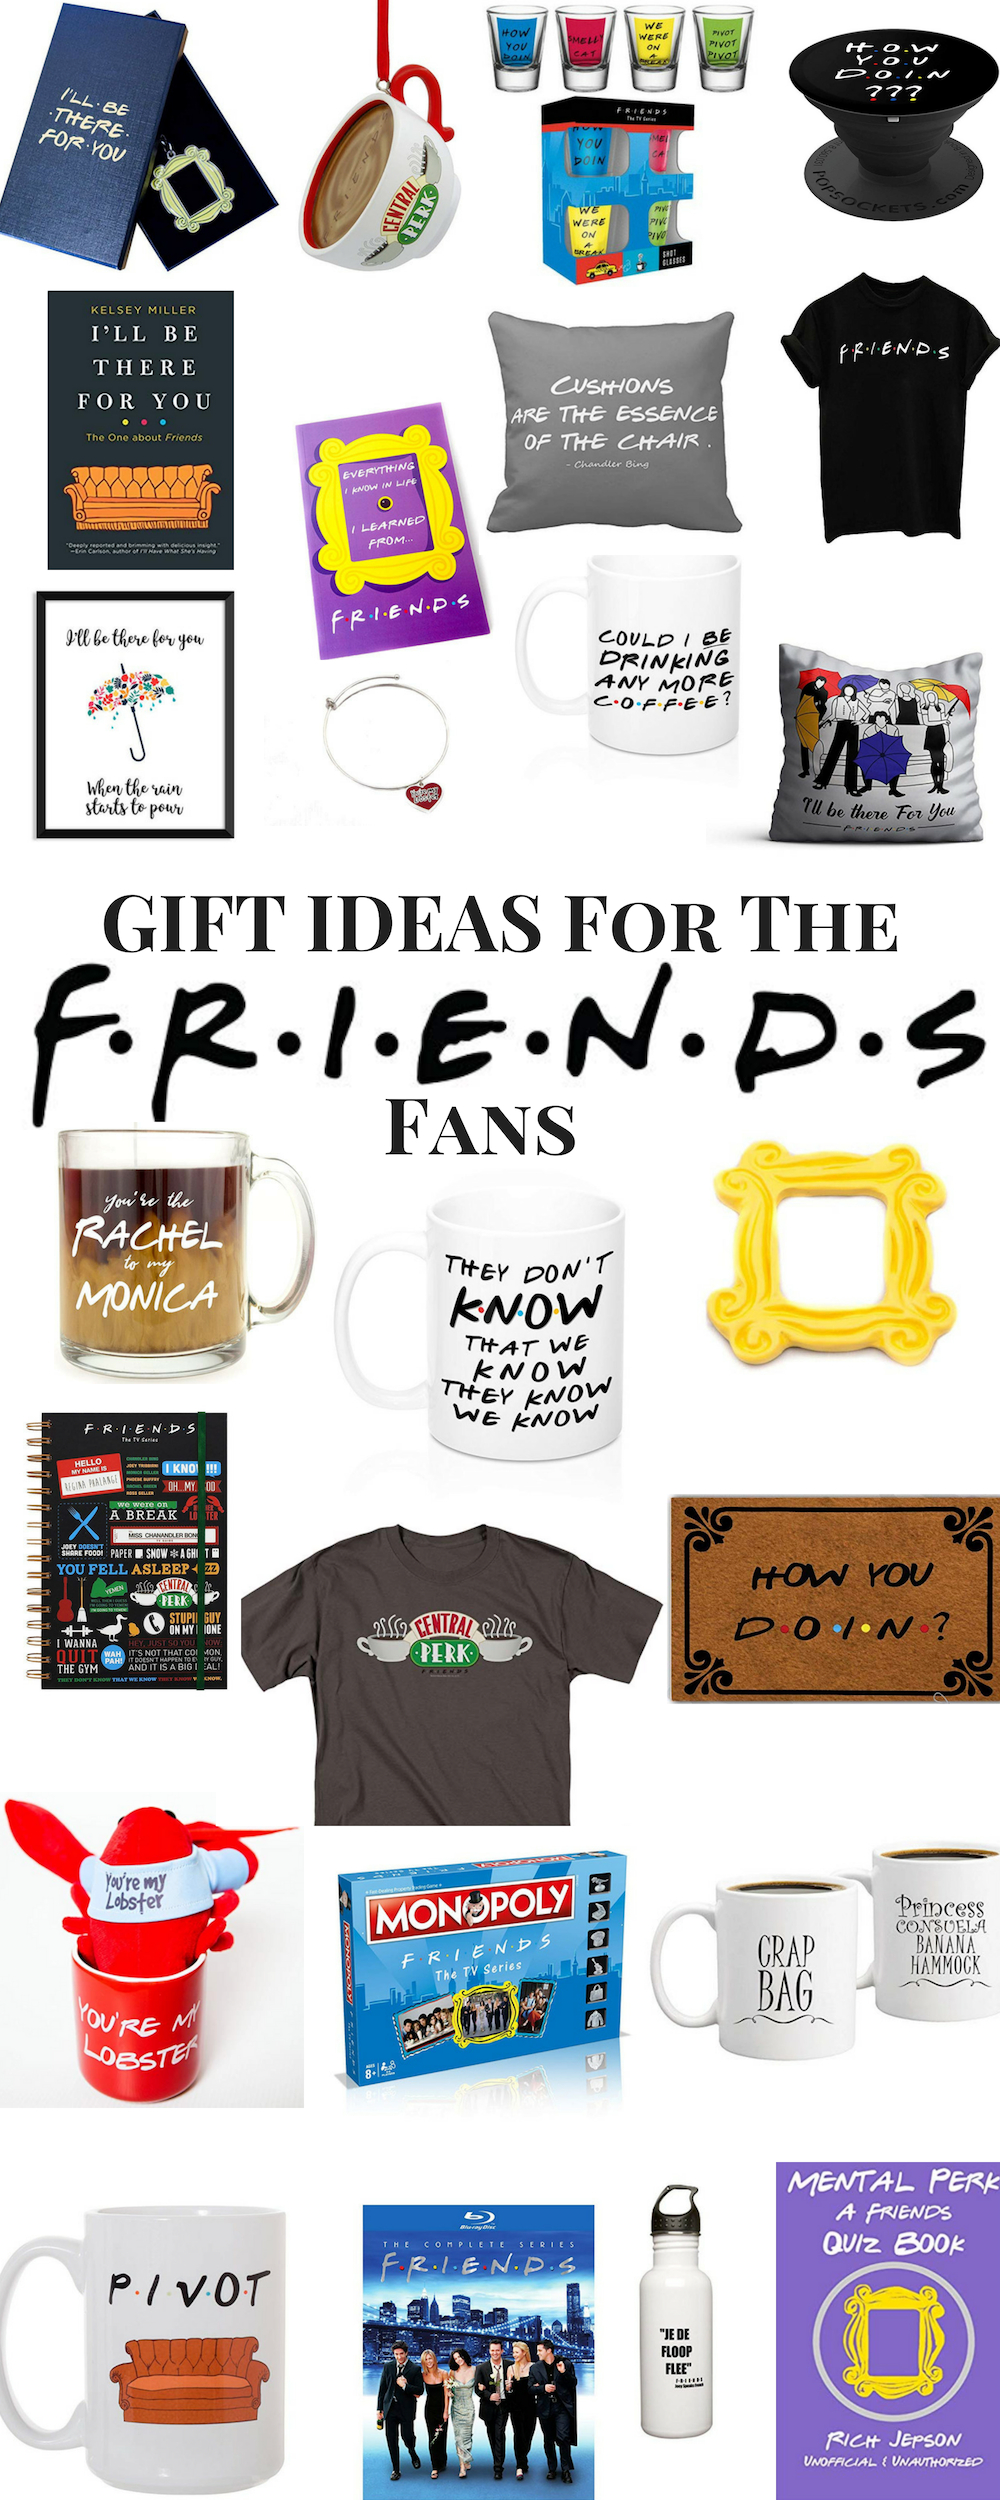 F R I E N D S Tv Show Gifts Could